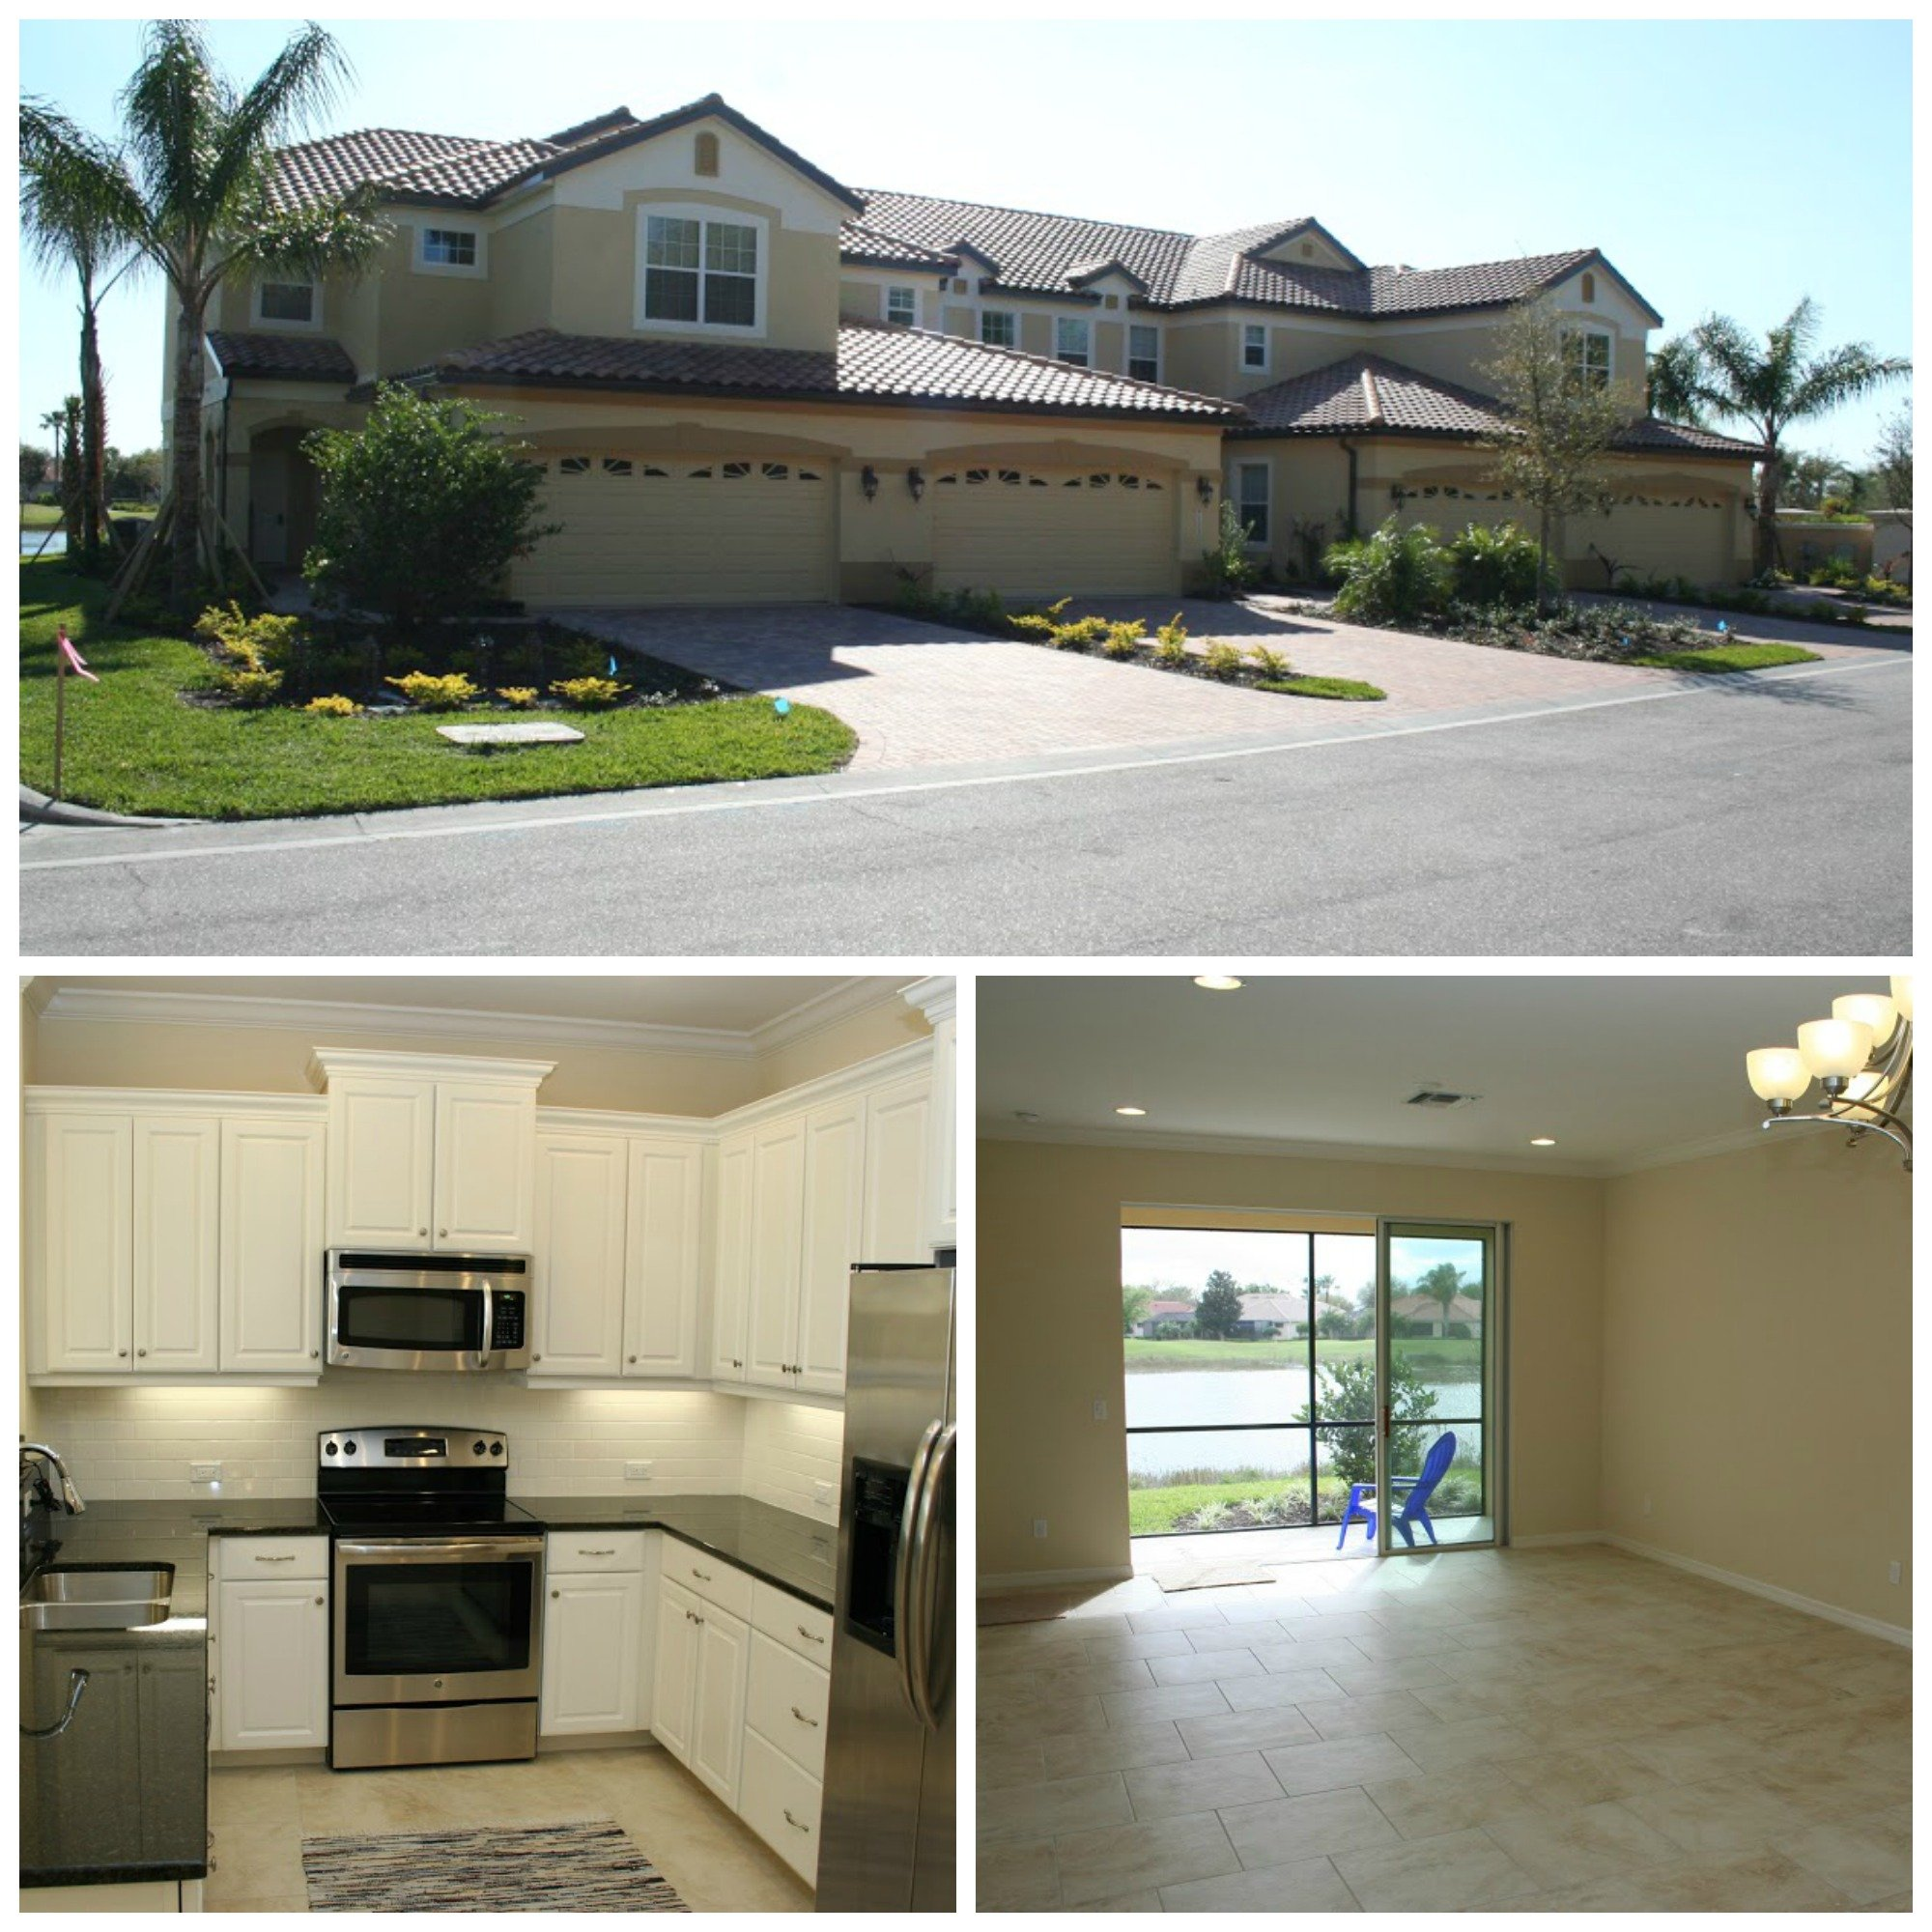 Own a rental property in Lakewood Ranch that you need rented? Contact Lindsay Leasing, a Sarasota property management company.